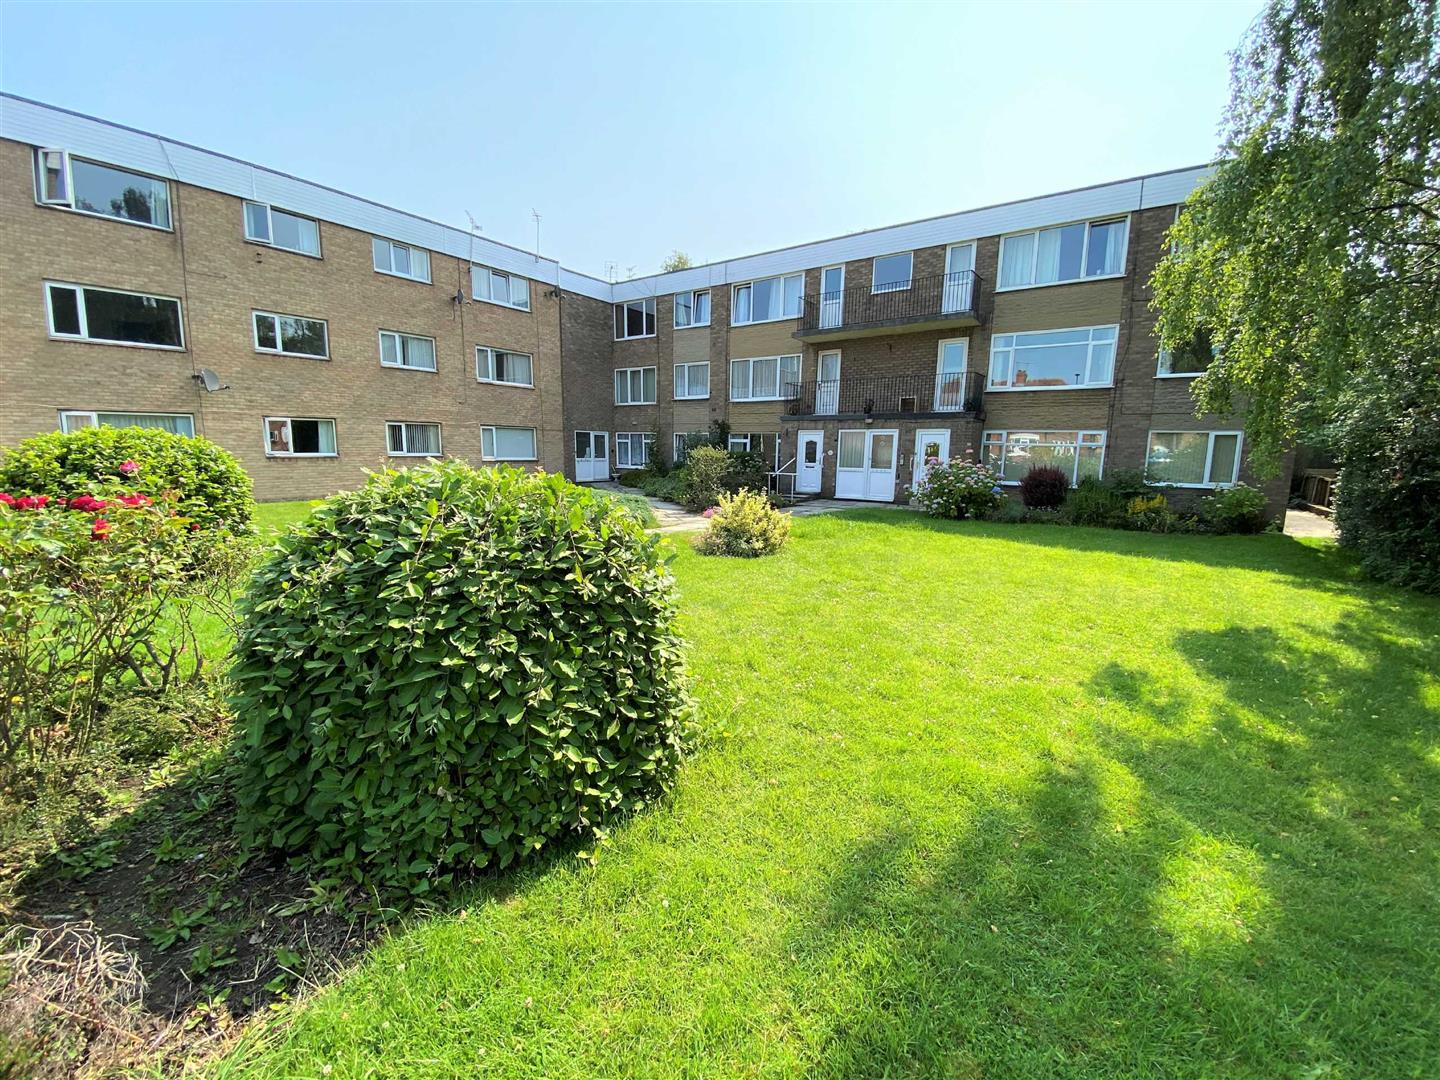 Portholme Court, Selby